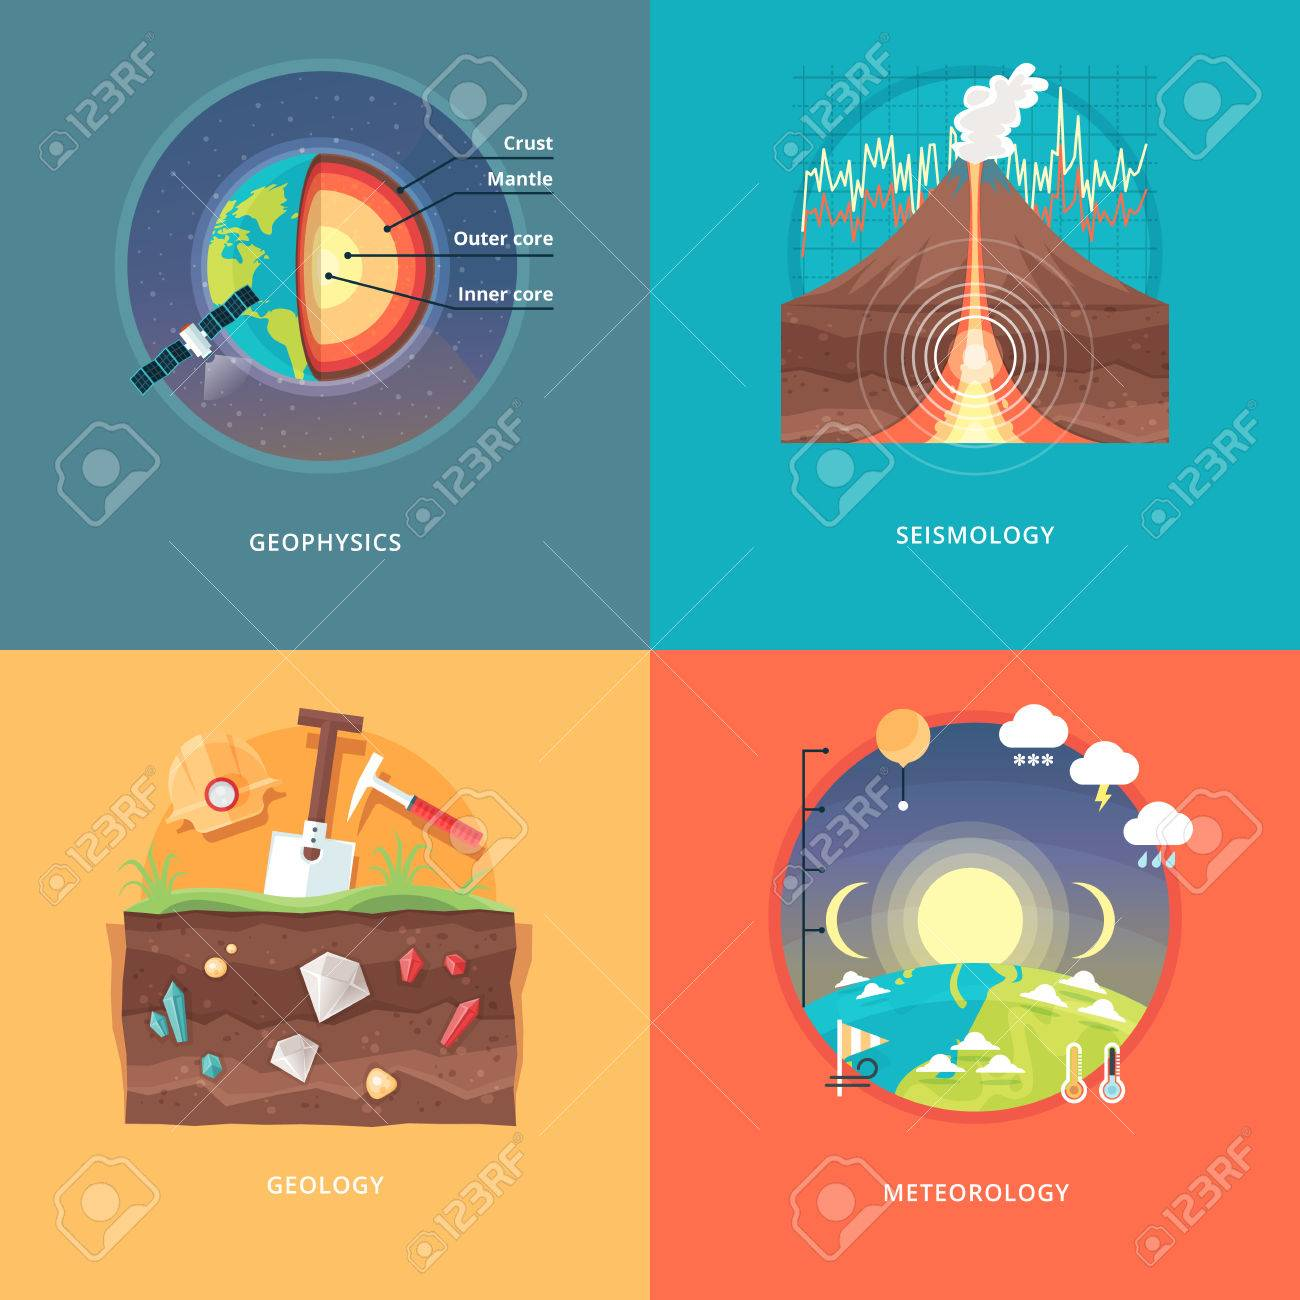 Education and science concept illustrations. Geophysics, seismology, geology, meteorology . Science of Earth and planet structure. Knowledge of athmospherical phenomena. Flat vector design banner. - 56722715